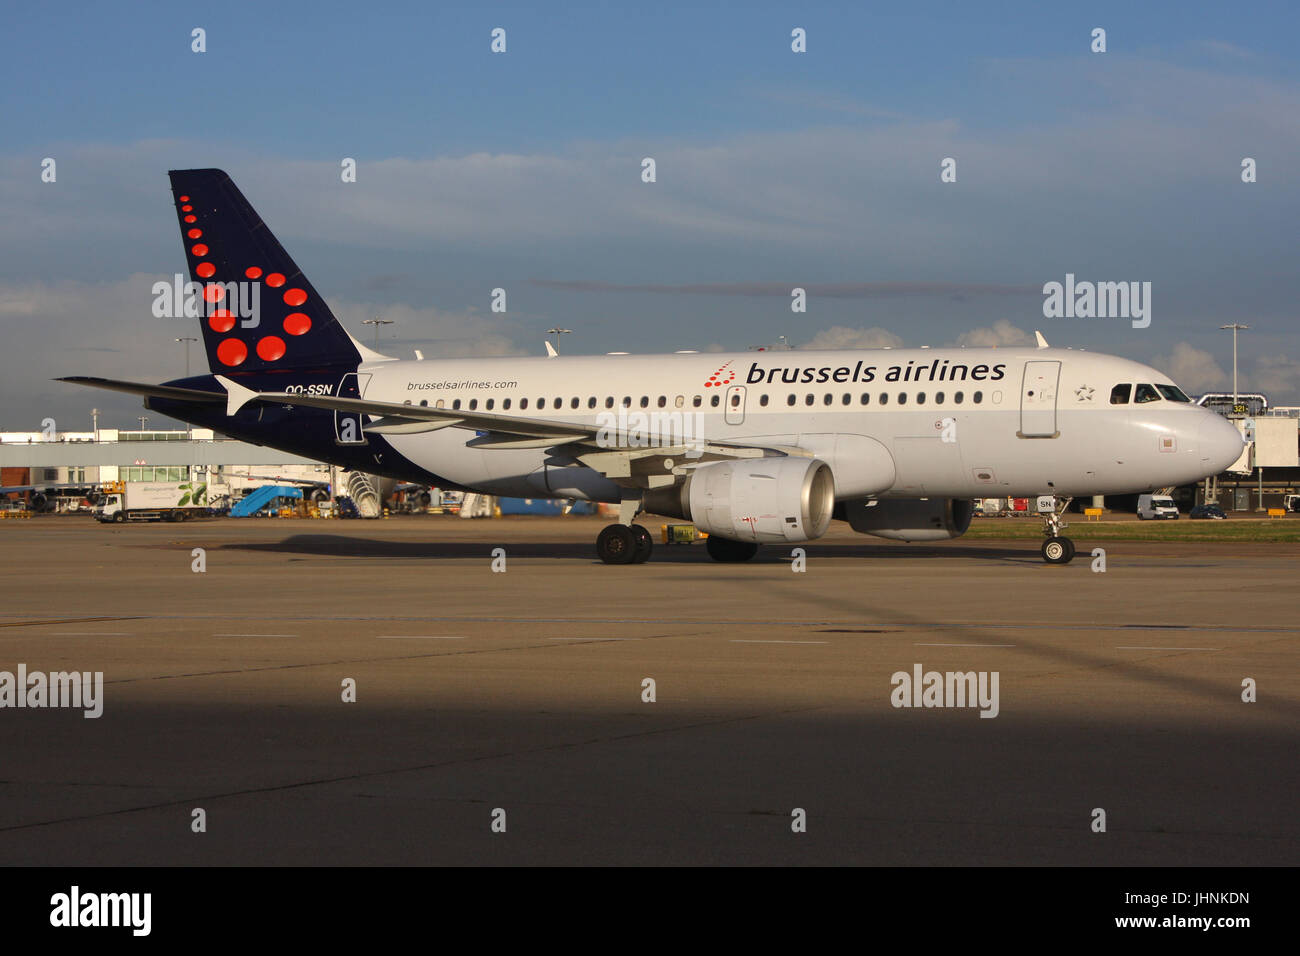 SABENA BRUSSELS AIRLINES - Stock Image